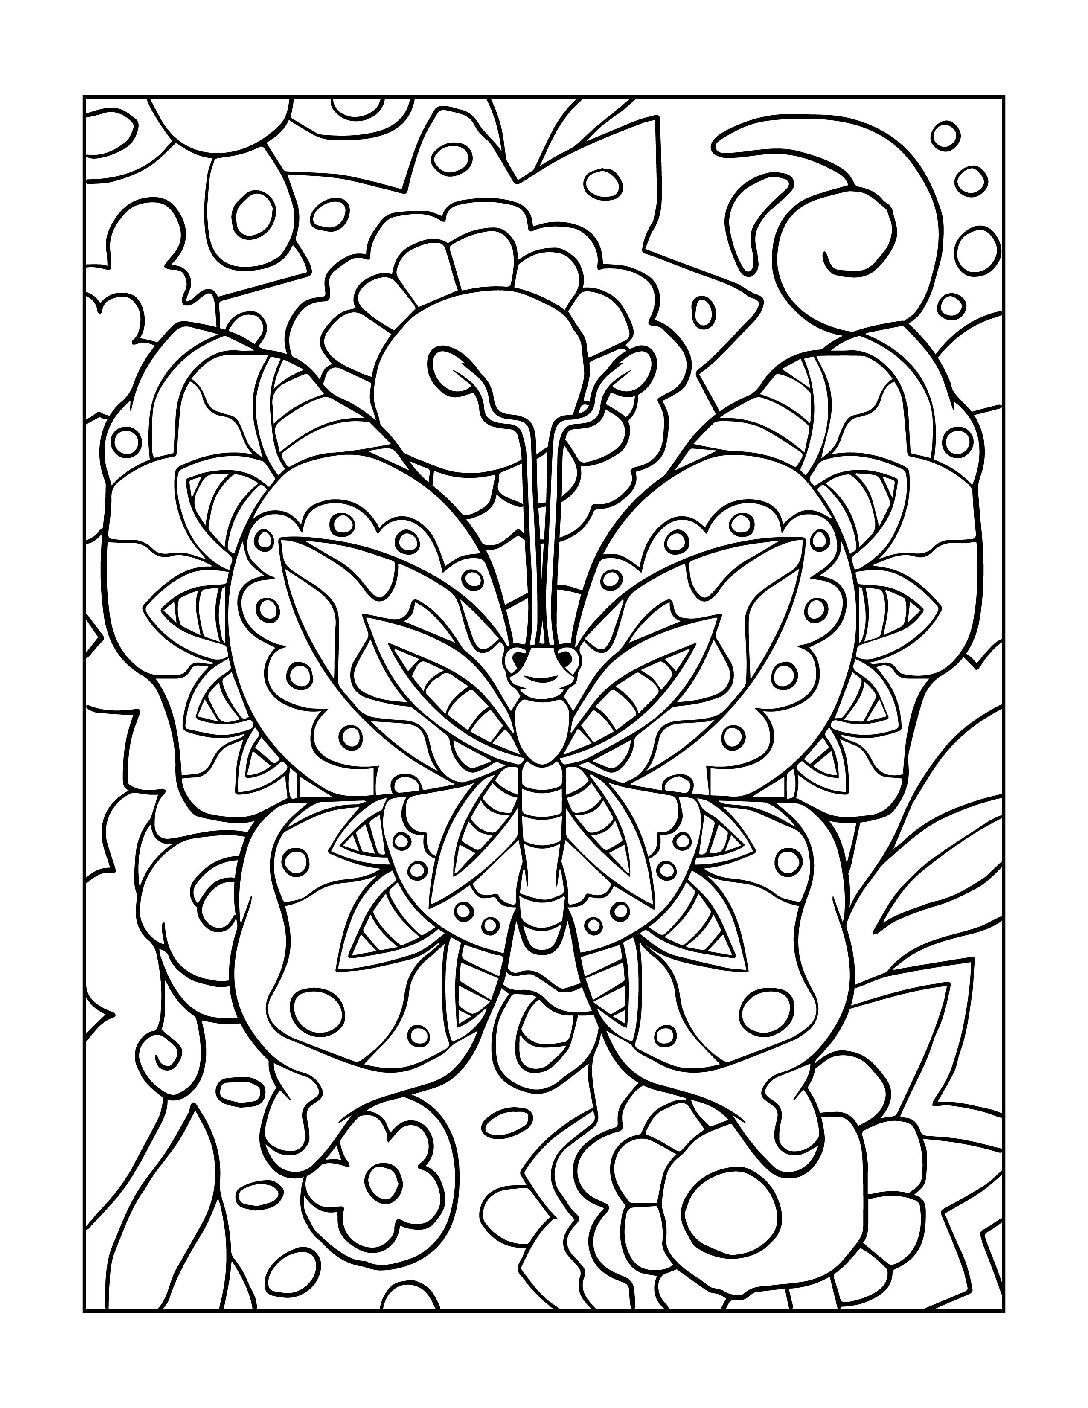 Coloring-Pages_Butterflies-13-01-pdf Free Printable Butterfly Colouring Pages